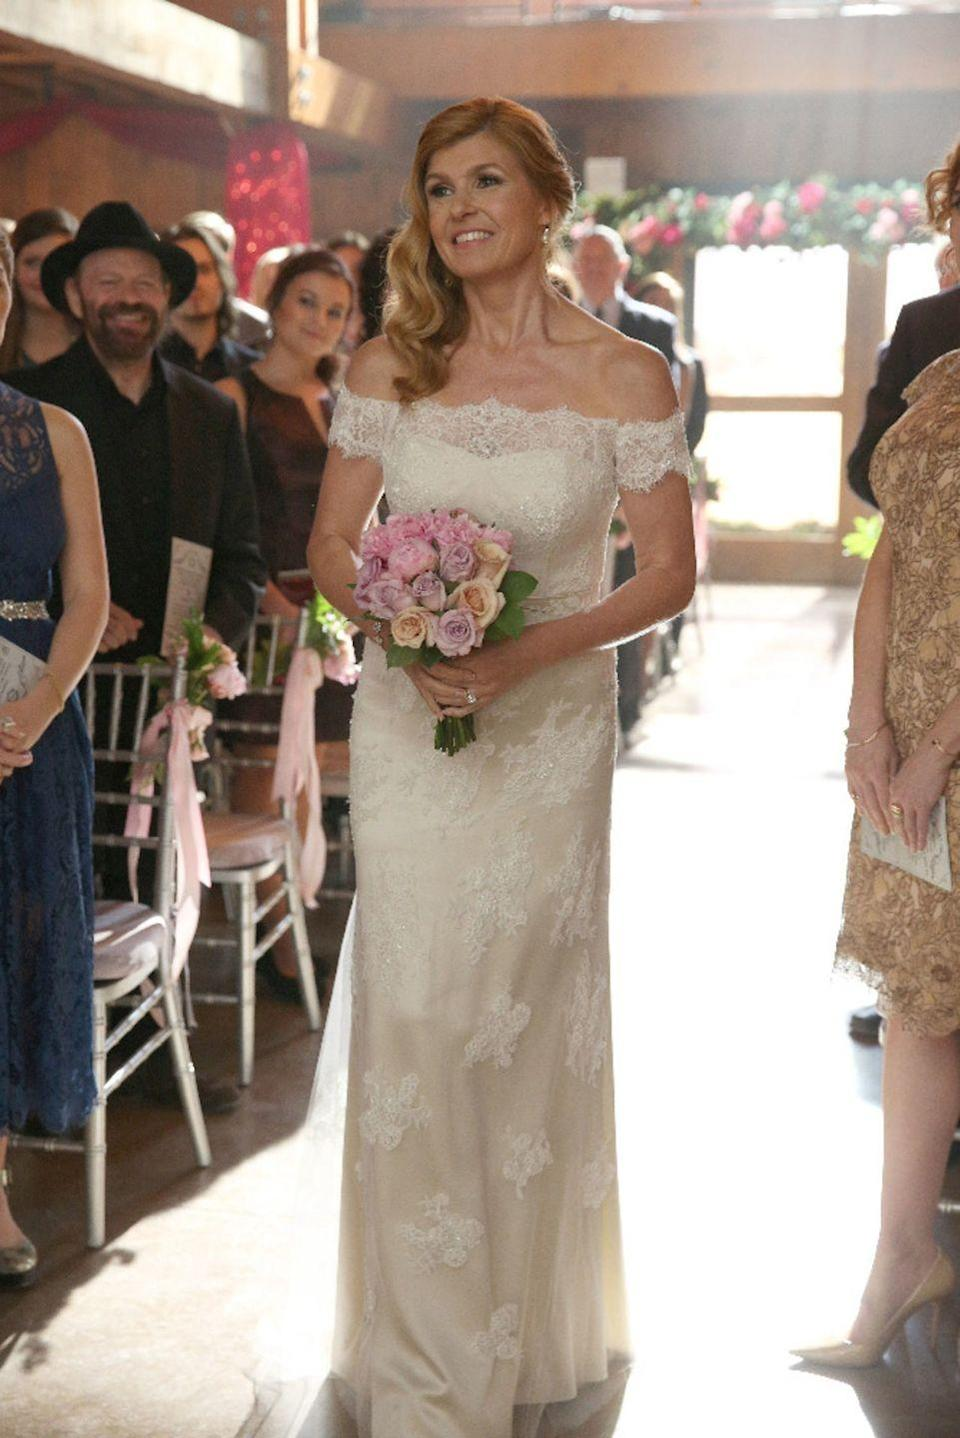 <p>In season 4, Rayna James exchanged vows with Deacon Claybourne wearing an off-the-shoulder wedding dress with lace and had her hair swept to one side. </p>